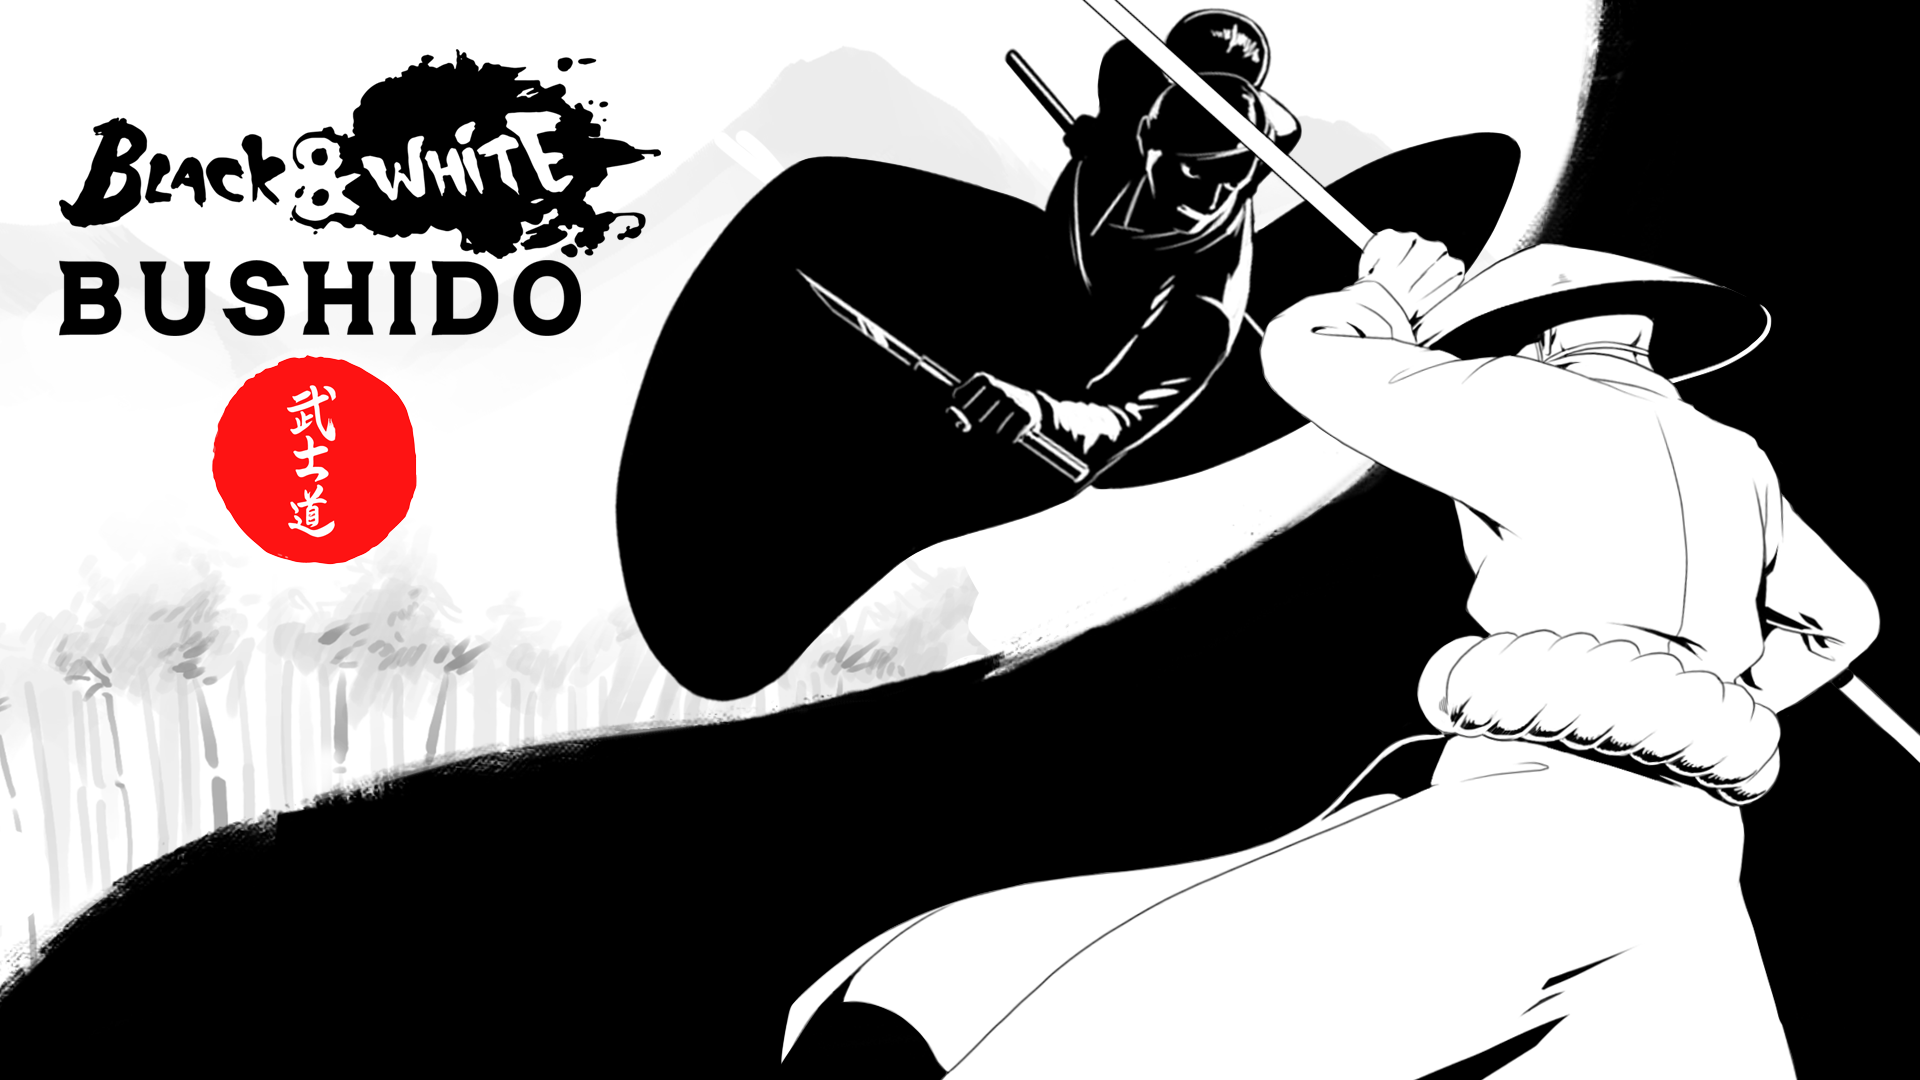 Black and white bushido postmortem